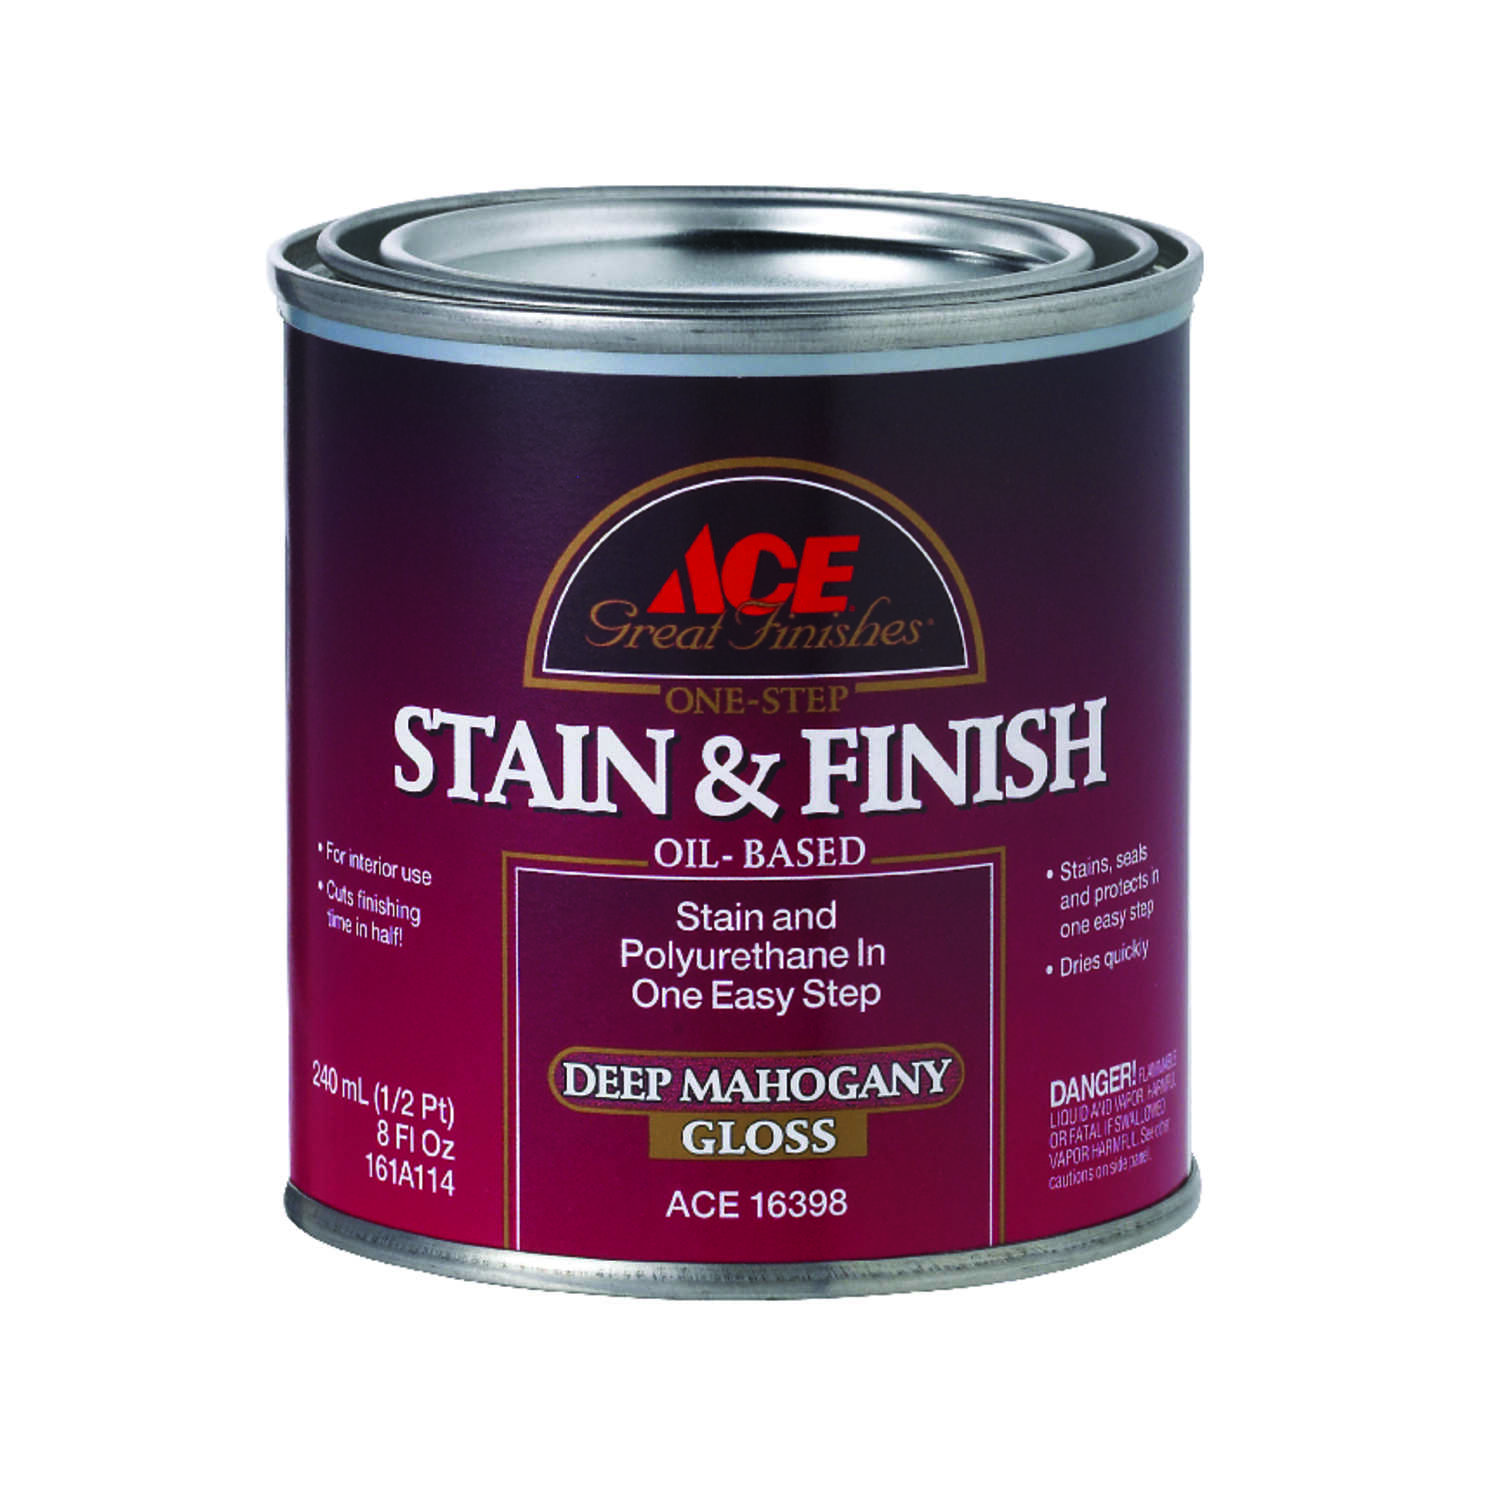 Ace  Great Finishes  Semi-Solid  Gloss  Deep Mahogany  Oil-Based  Oil  Wood Stain and Sealer  1/2 pt